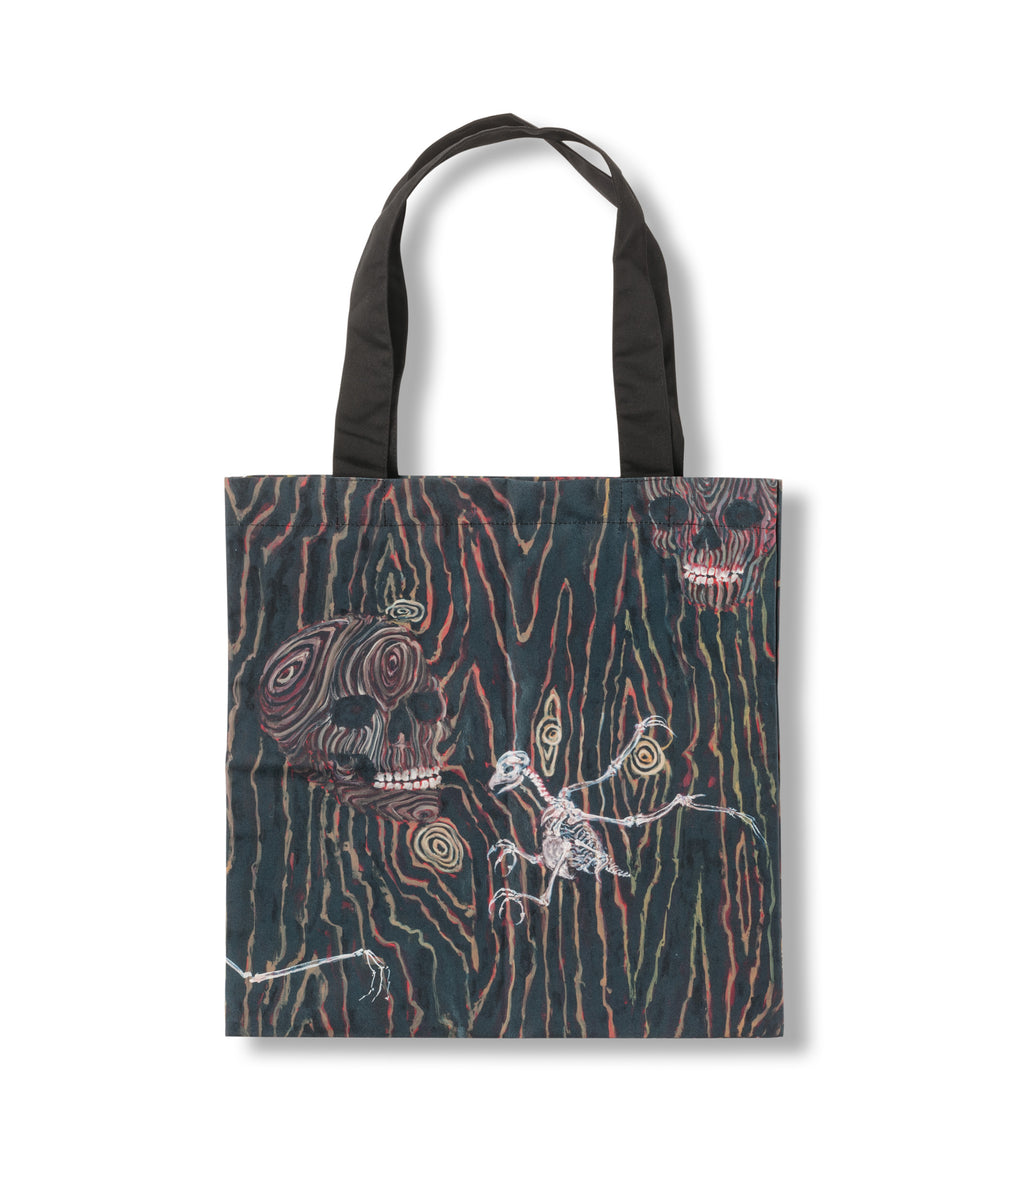 Fiona Hall Tote Bag